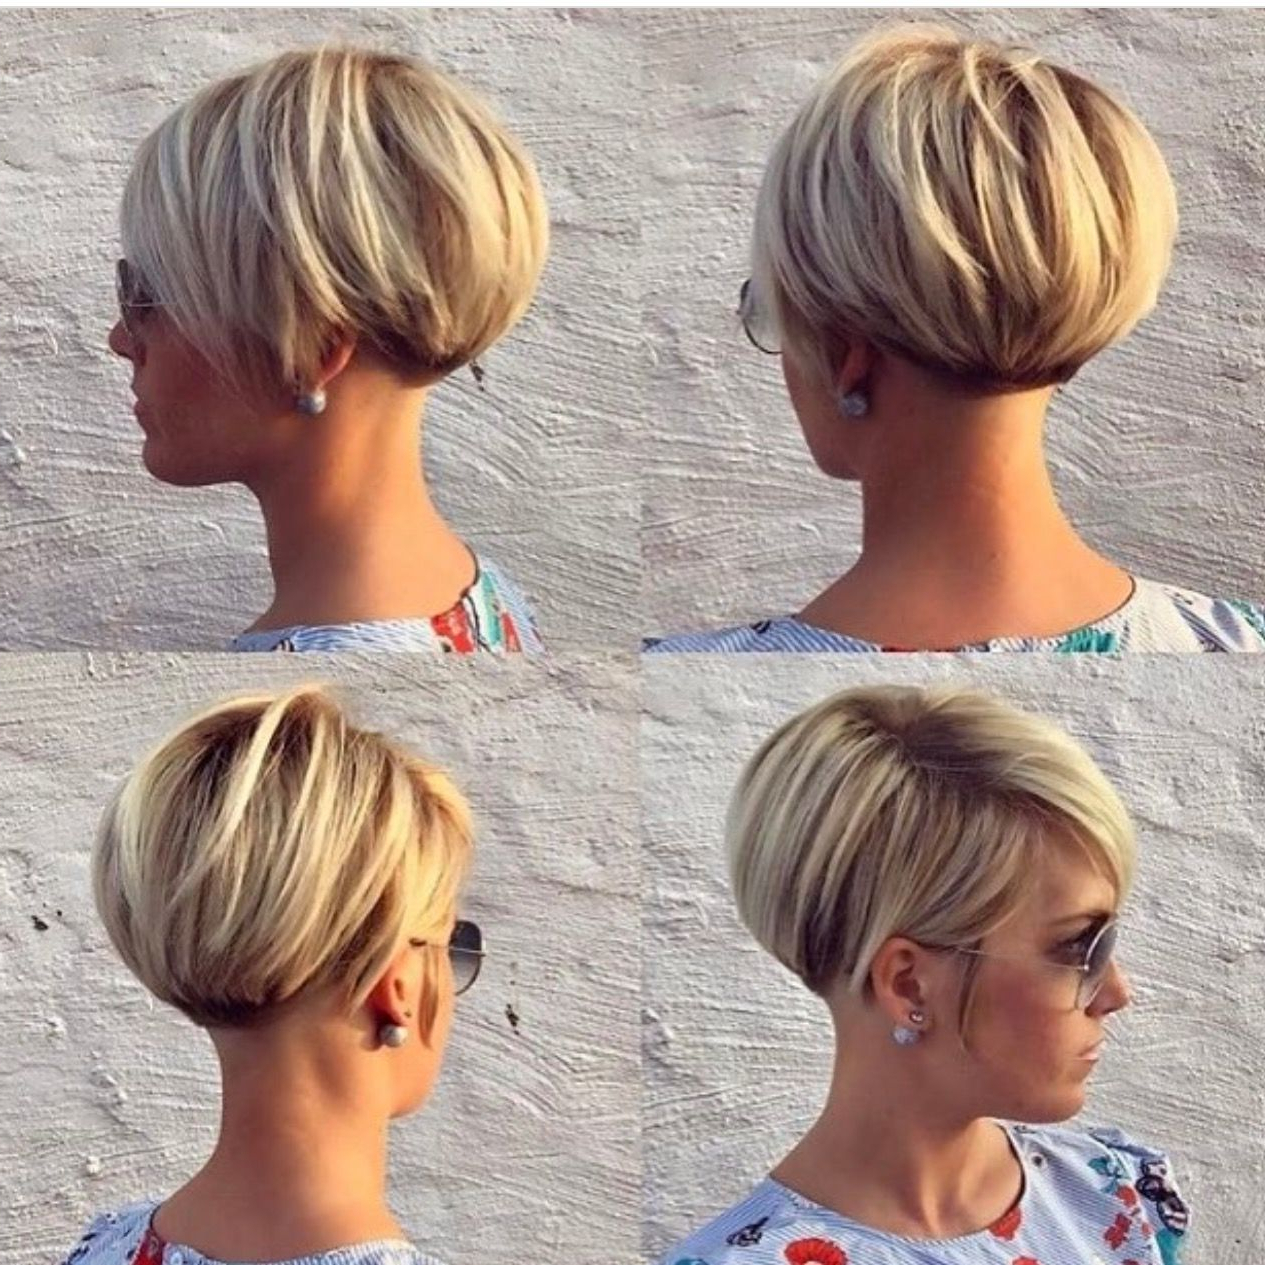 Pinsvetlana Marchuk On Haircuts In 2018 | Pinterest | Short Hair Intended For Two Tone Stacked Pixie Bob Haircuts (View 13 of 20)